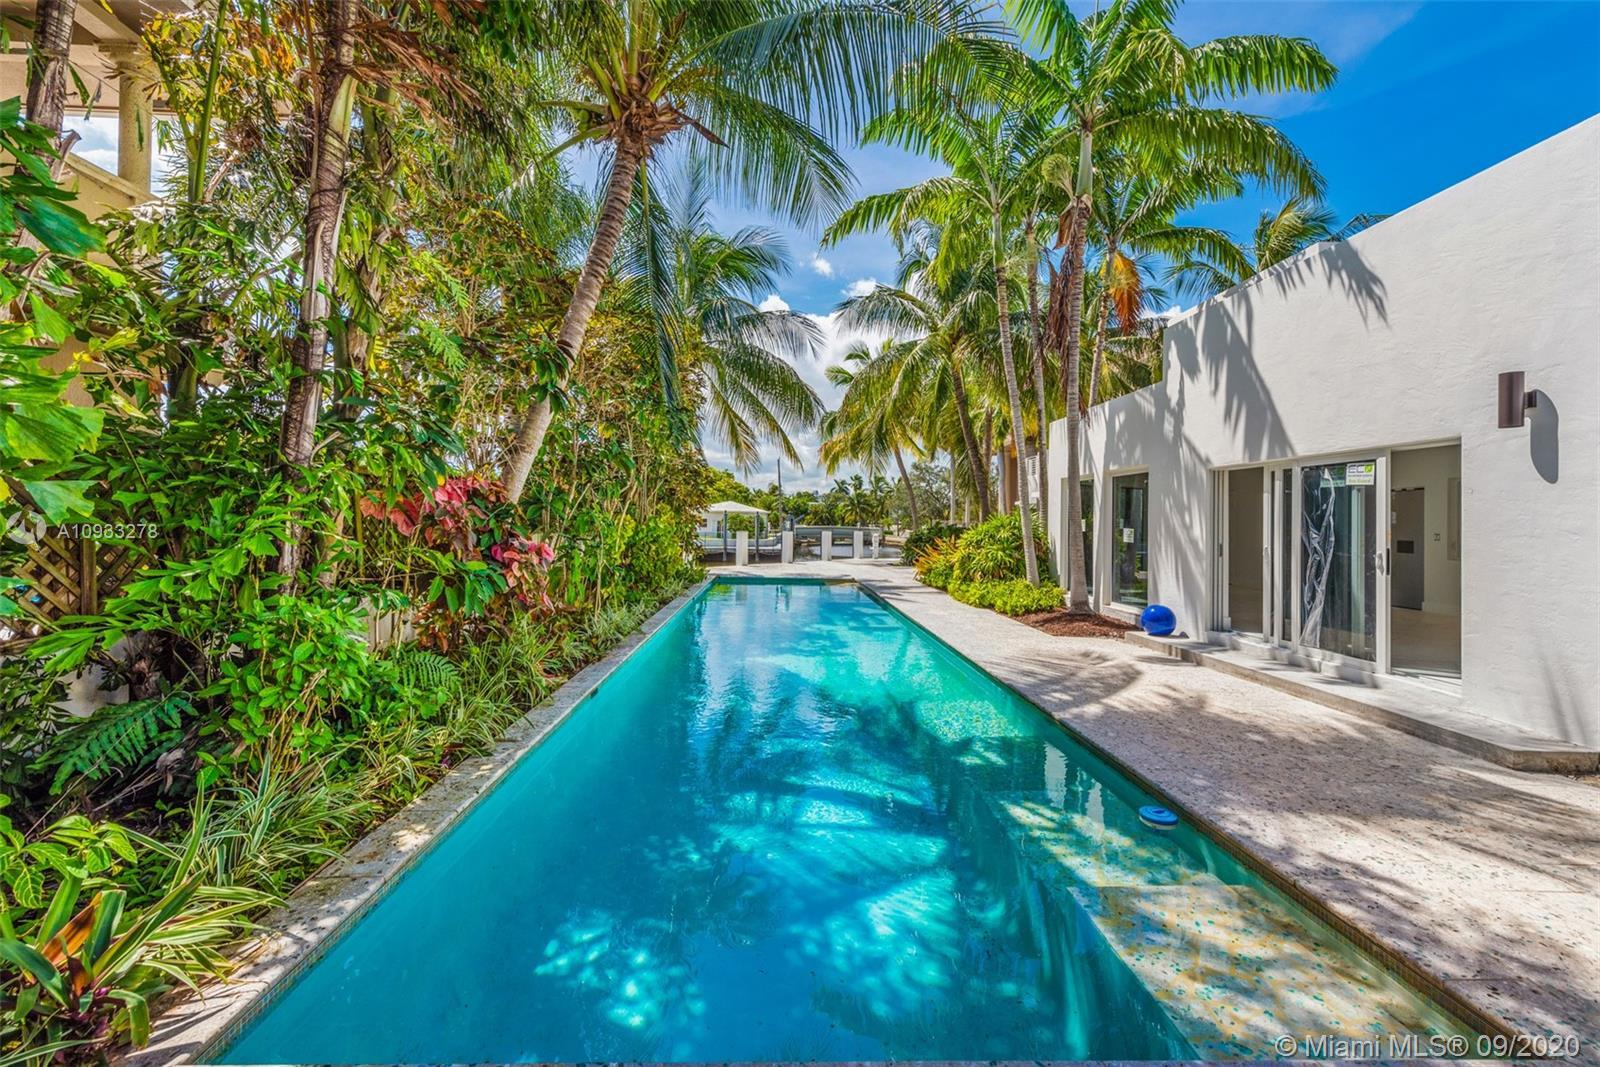 Welcome to your own water sanctuary! This newly renovated private oasis offers a rare layout and pri